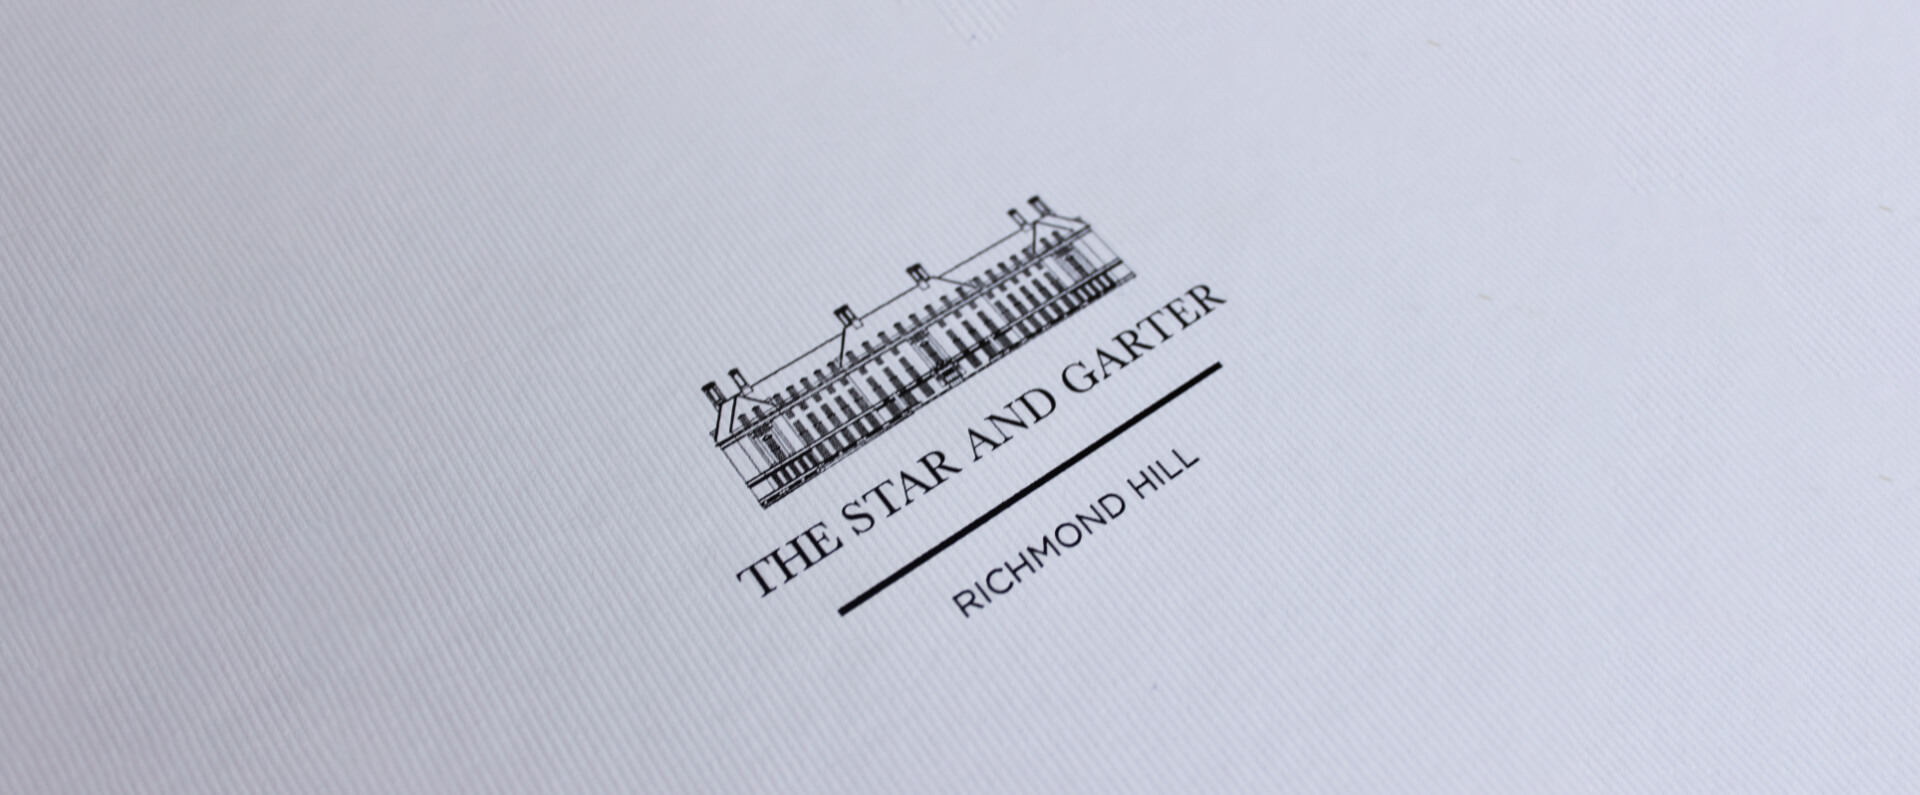 Star and Garter logo in print